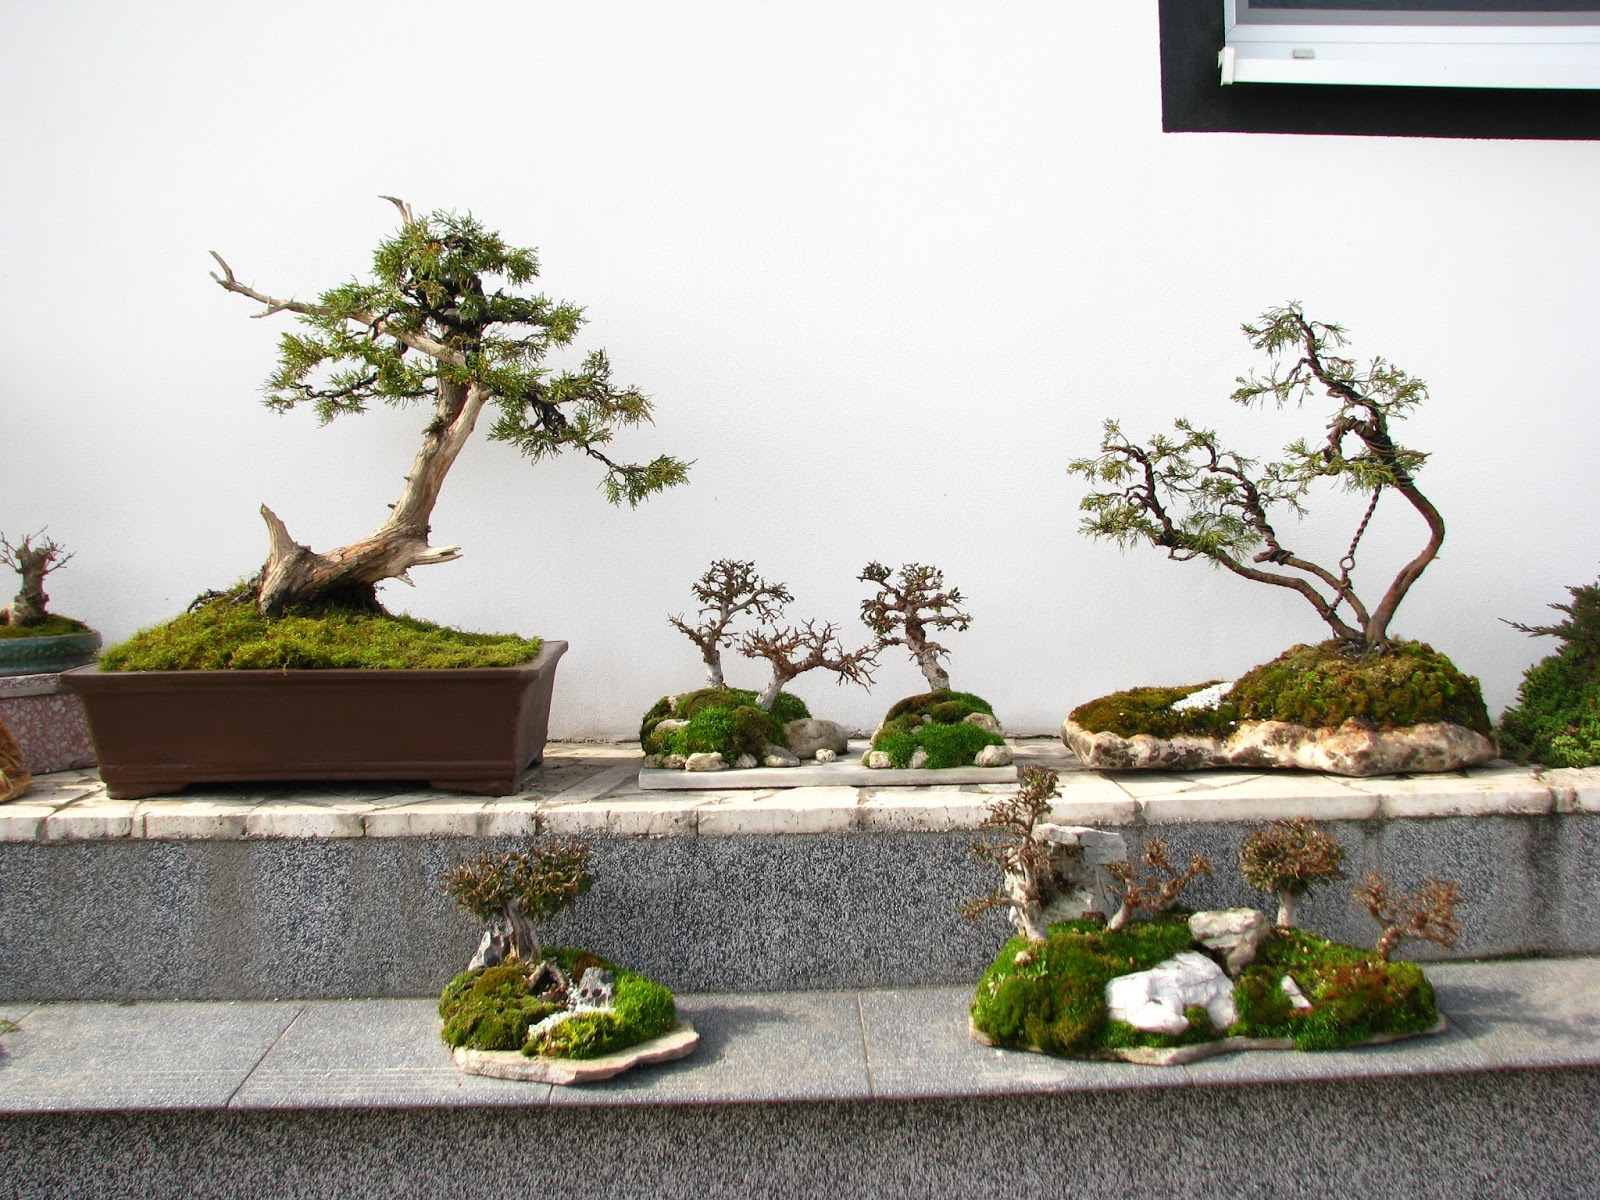 Mimos Penjing Heaven Wiring Wisteria Bonsai Freshly Repotted Literati Last Years Airlayer That Was Separated In The Middle Of Summer And Planted With Just A Few Roots Pot Supported